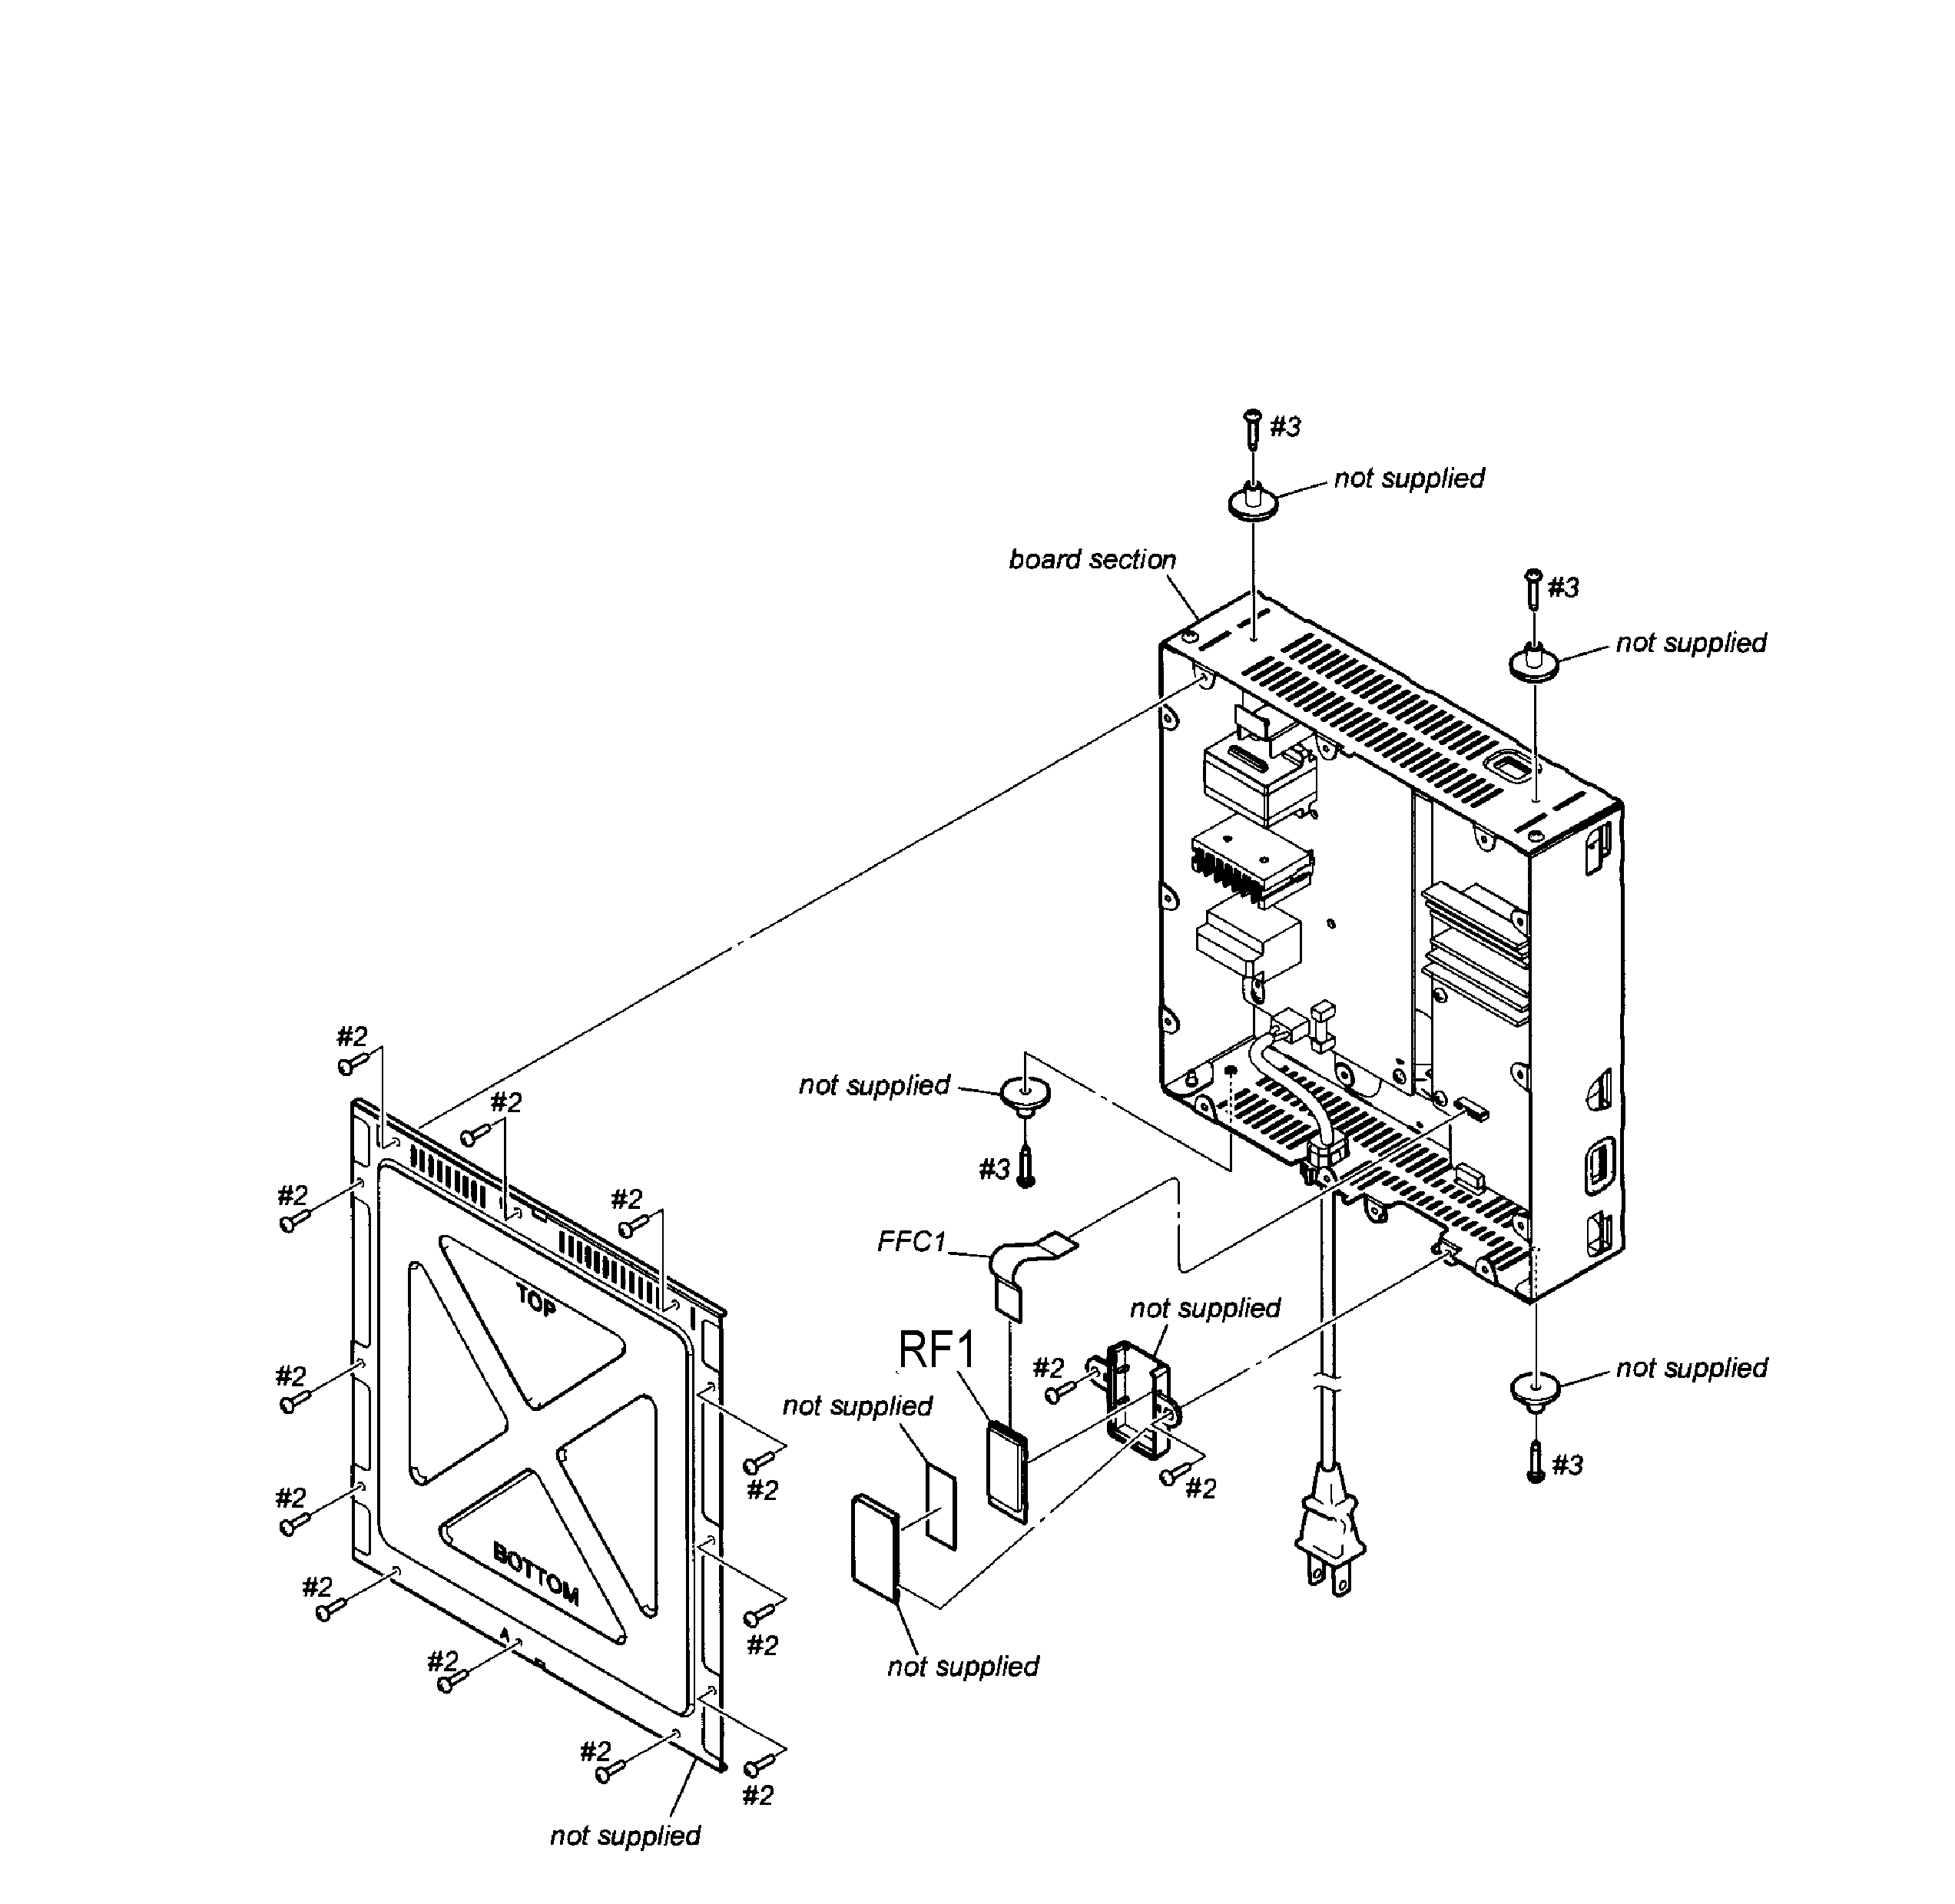 Speaker parts diagram and parts list for sony audioequipmentparts